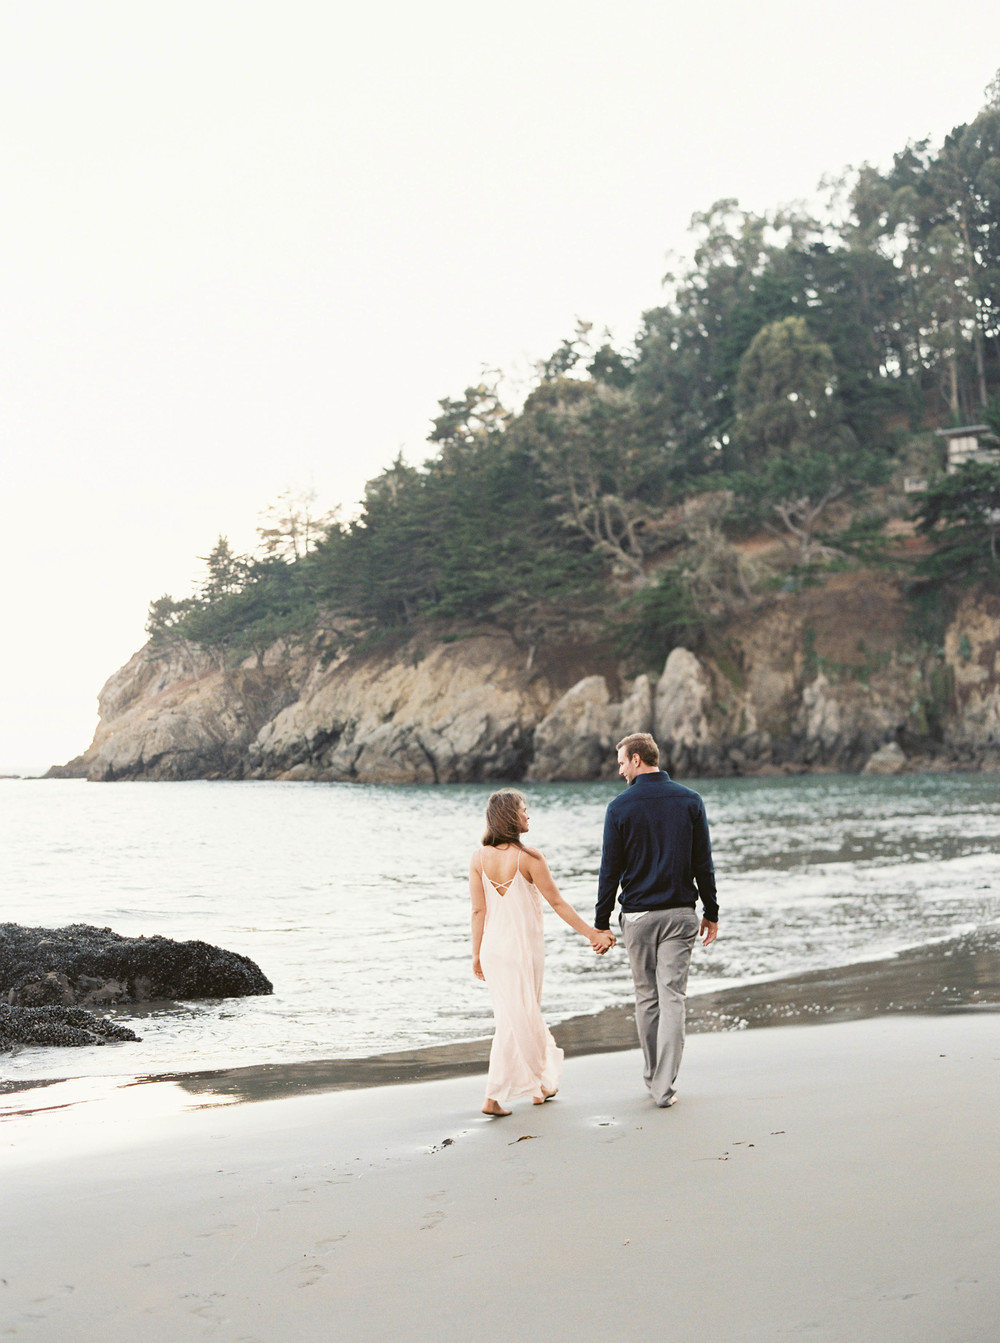 Meghan Mehan Photography - Fine Art Film Wedding Photography - San Francisco | Napa | Sonoma | Big Sur | Santa Barbara - 104.jpg